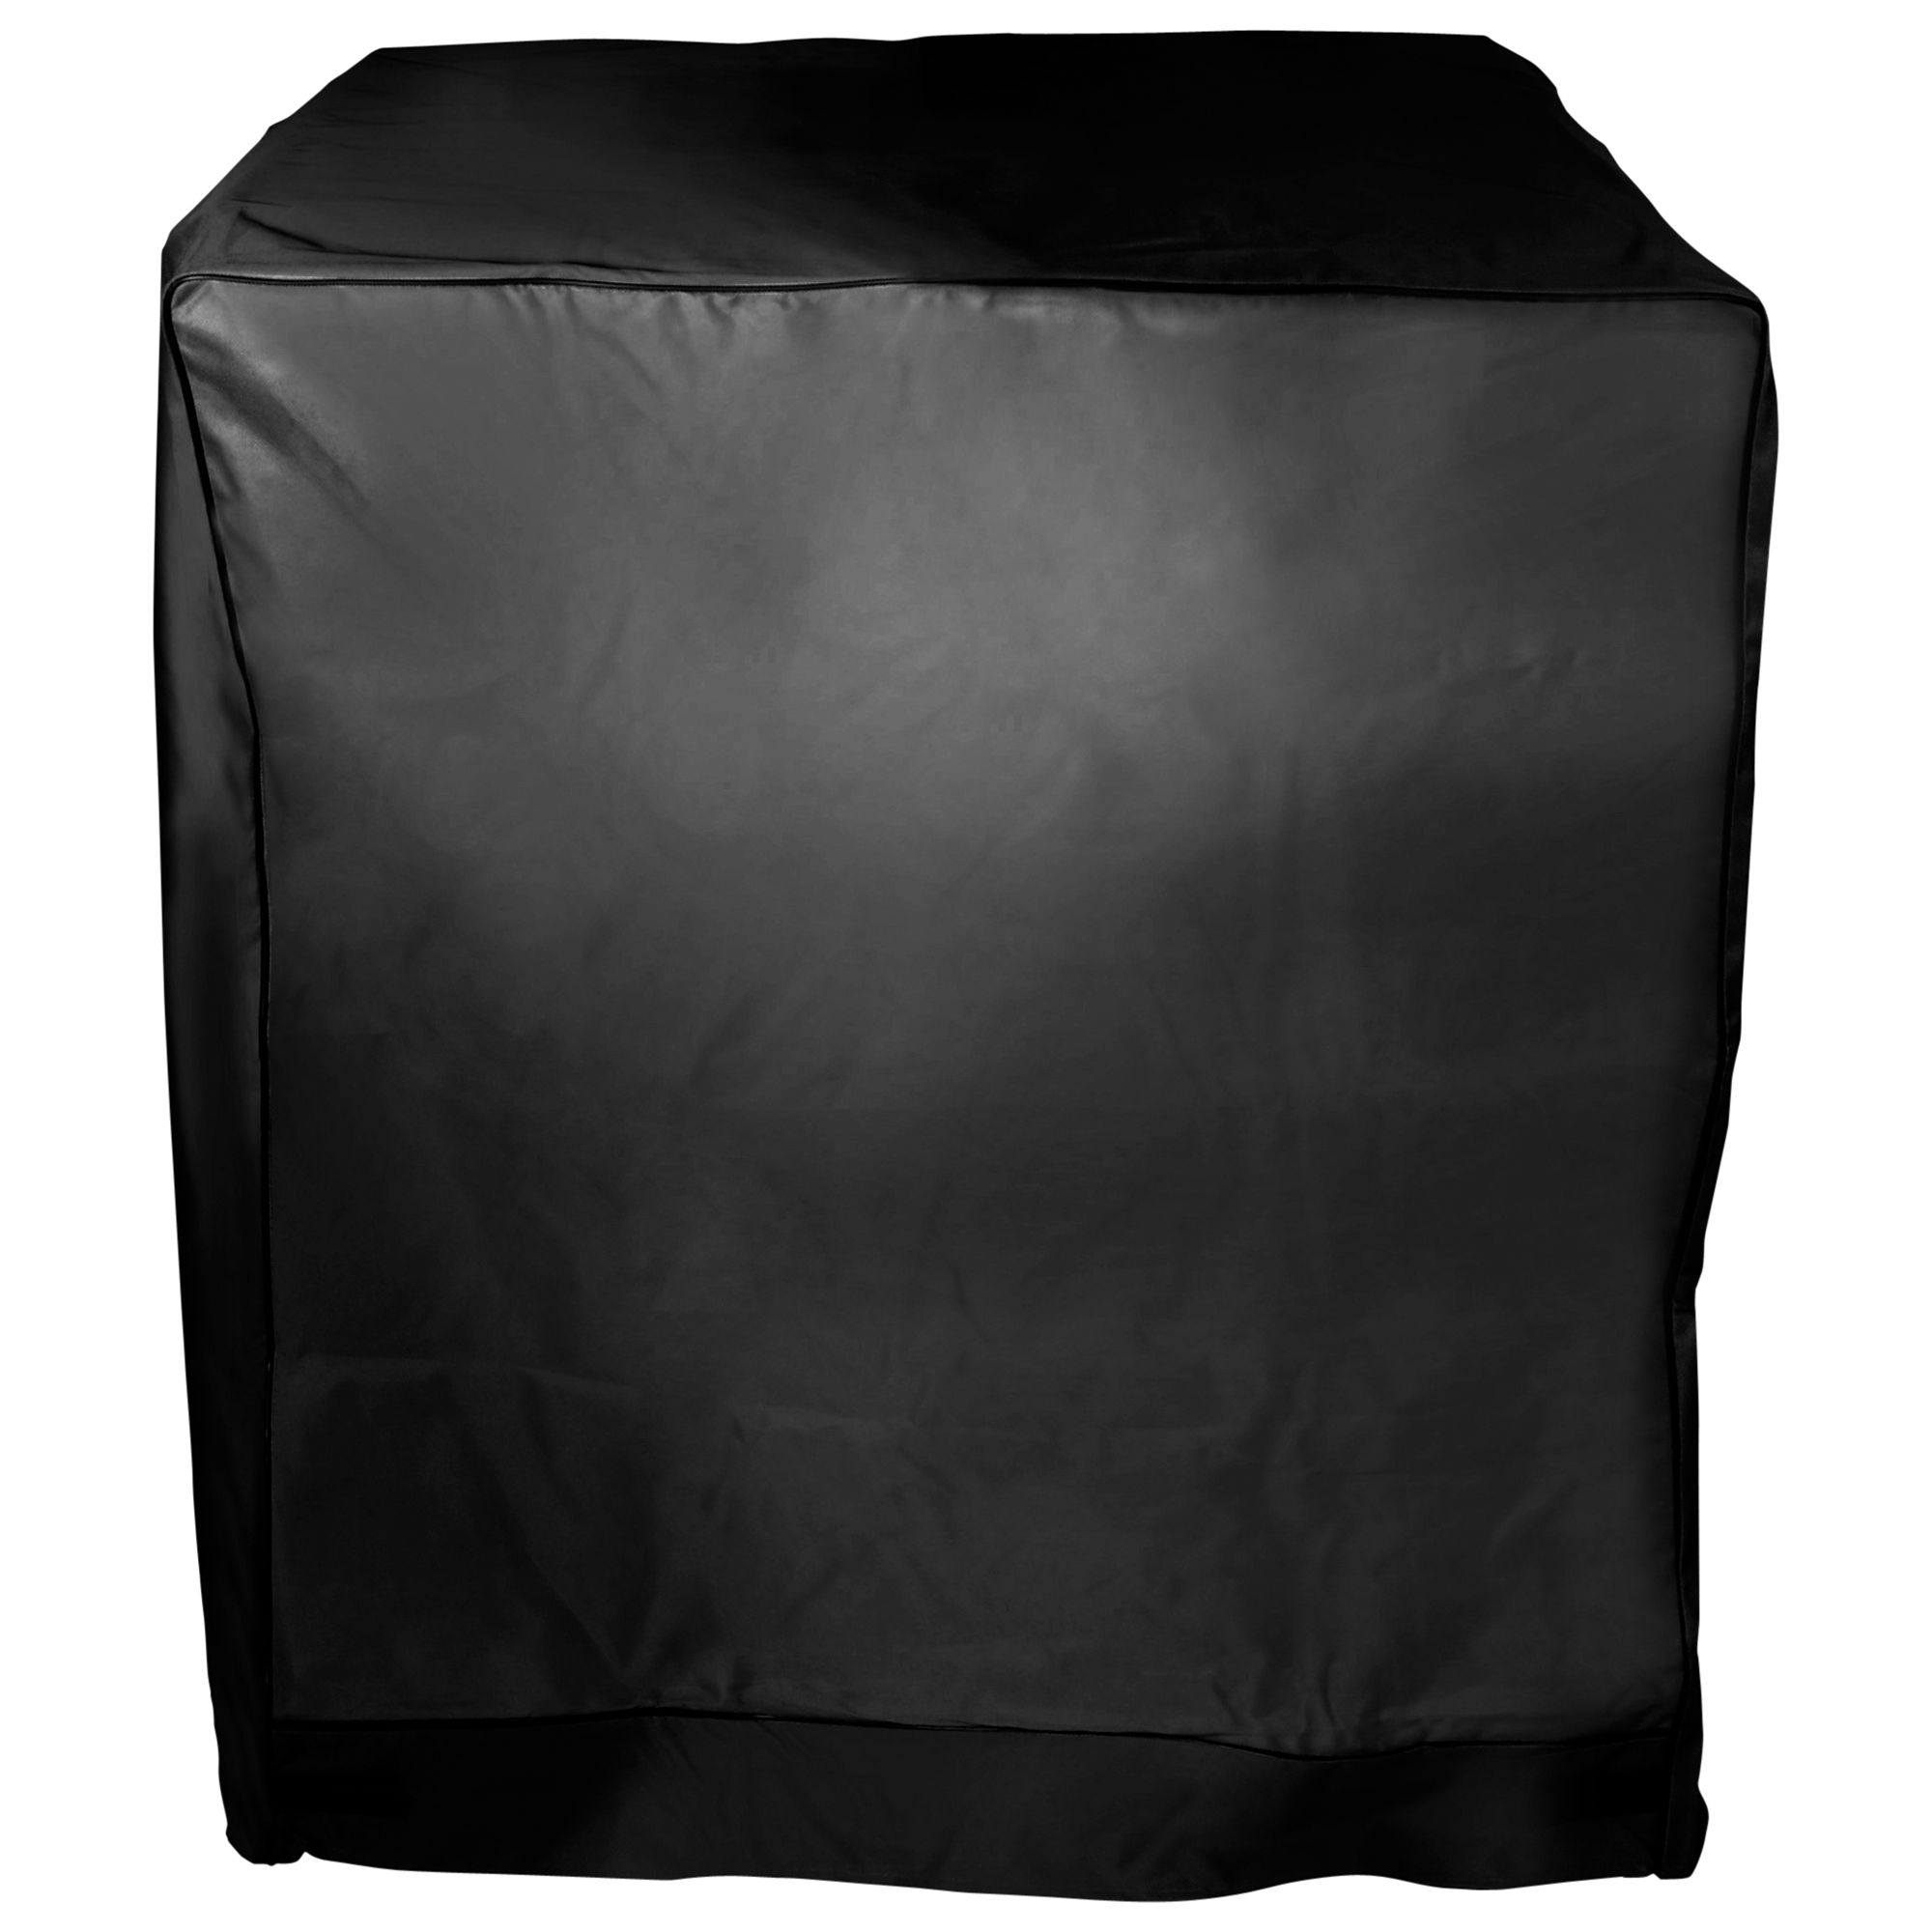 John Lewis 2 Burner Barbecue Cover, H100 x W47.5 x D70.5cm